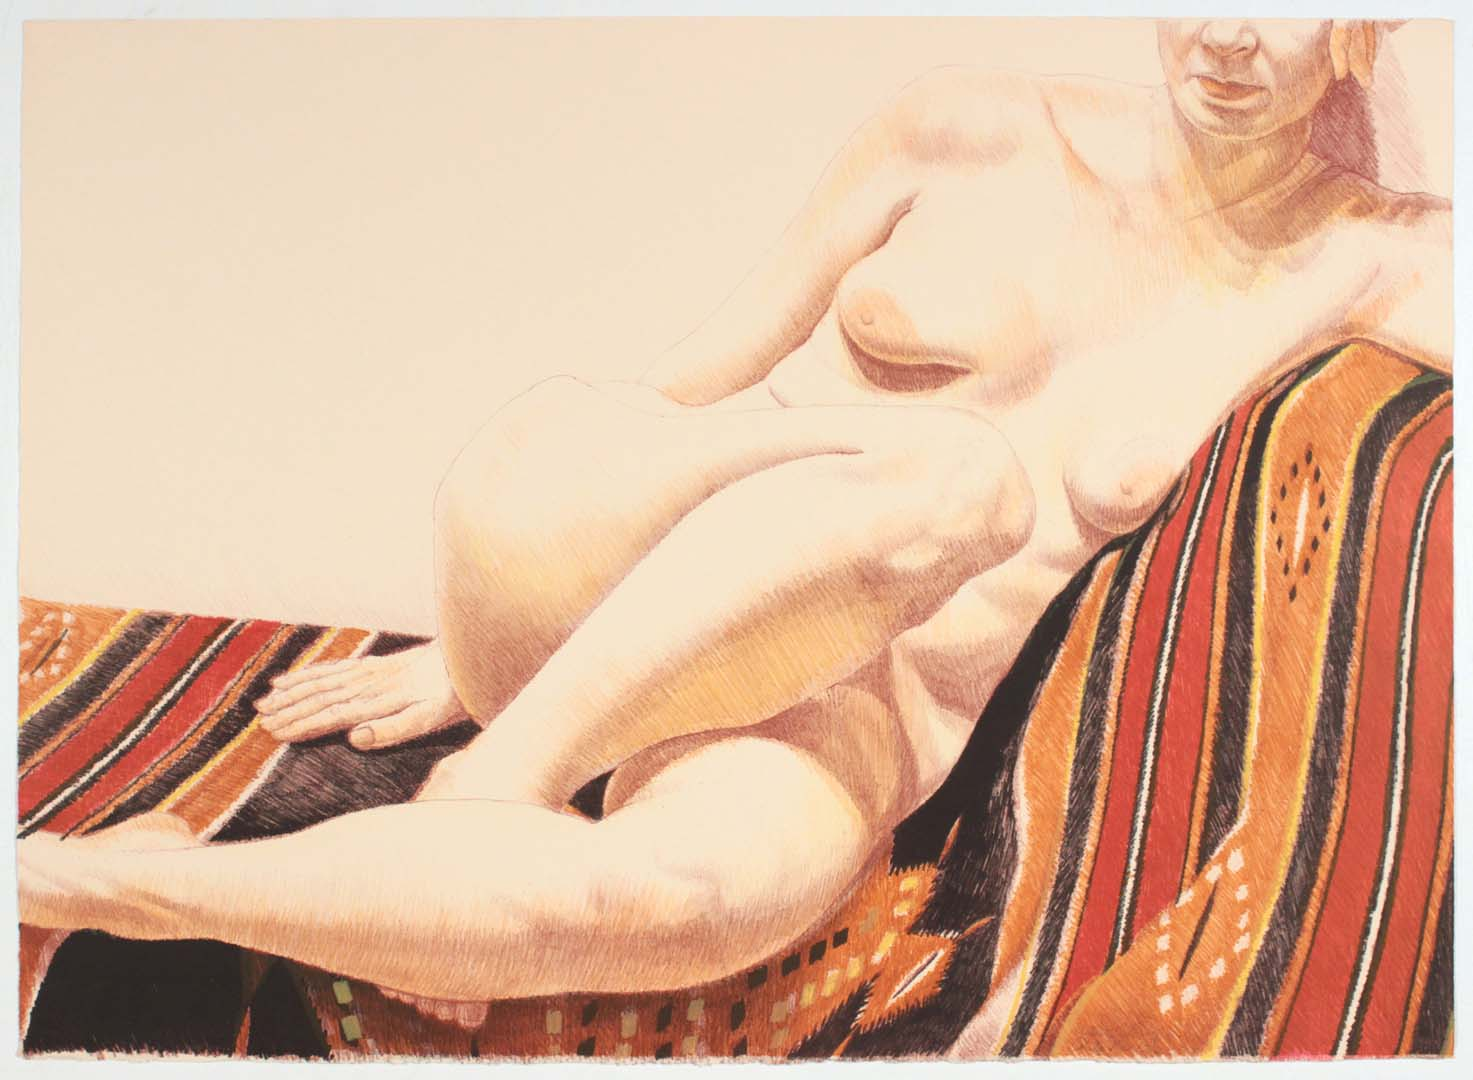 1973 Girl on Orange and Black Mexican Rug Lithograph on Paper 24.75 x 34